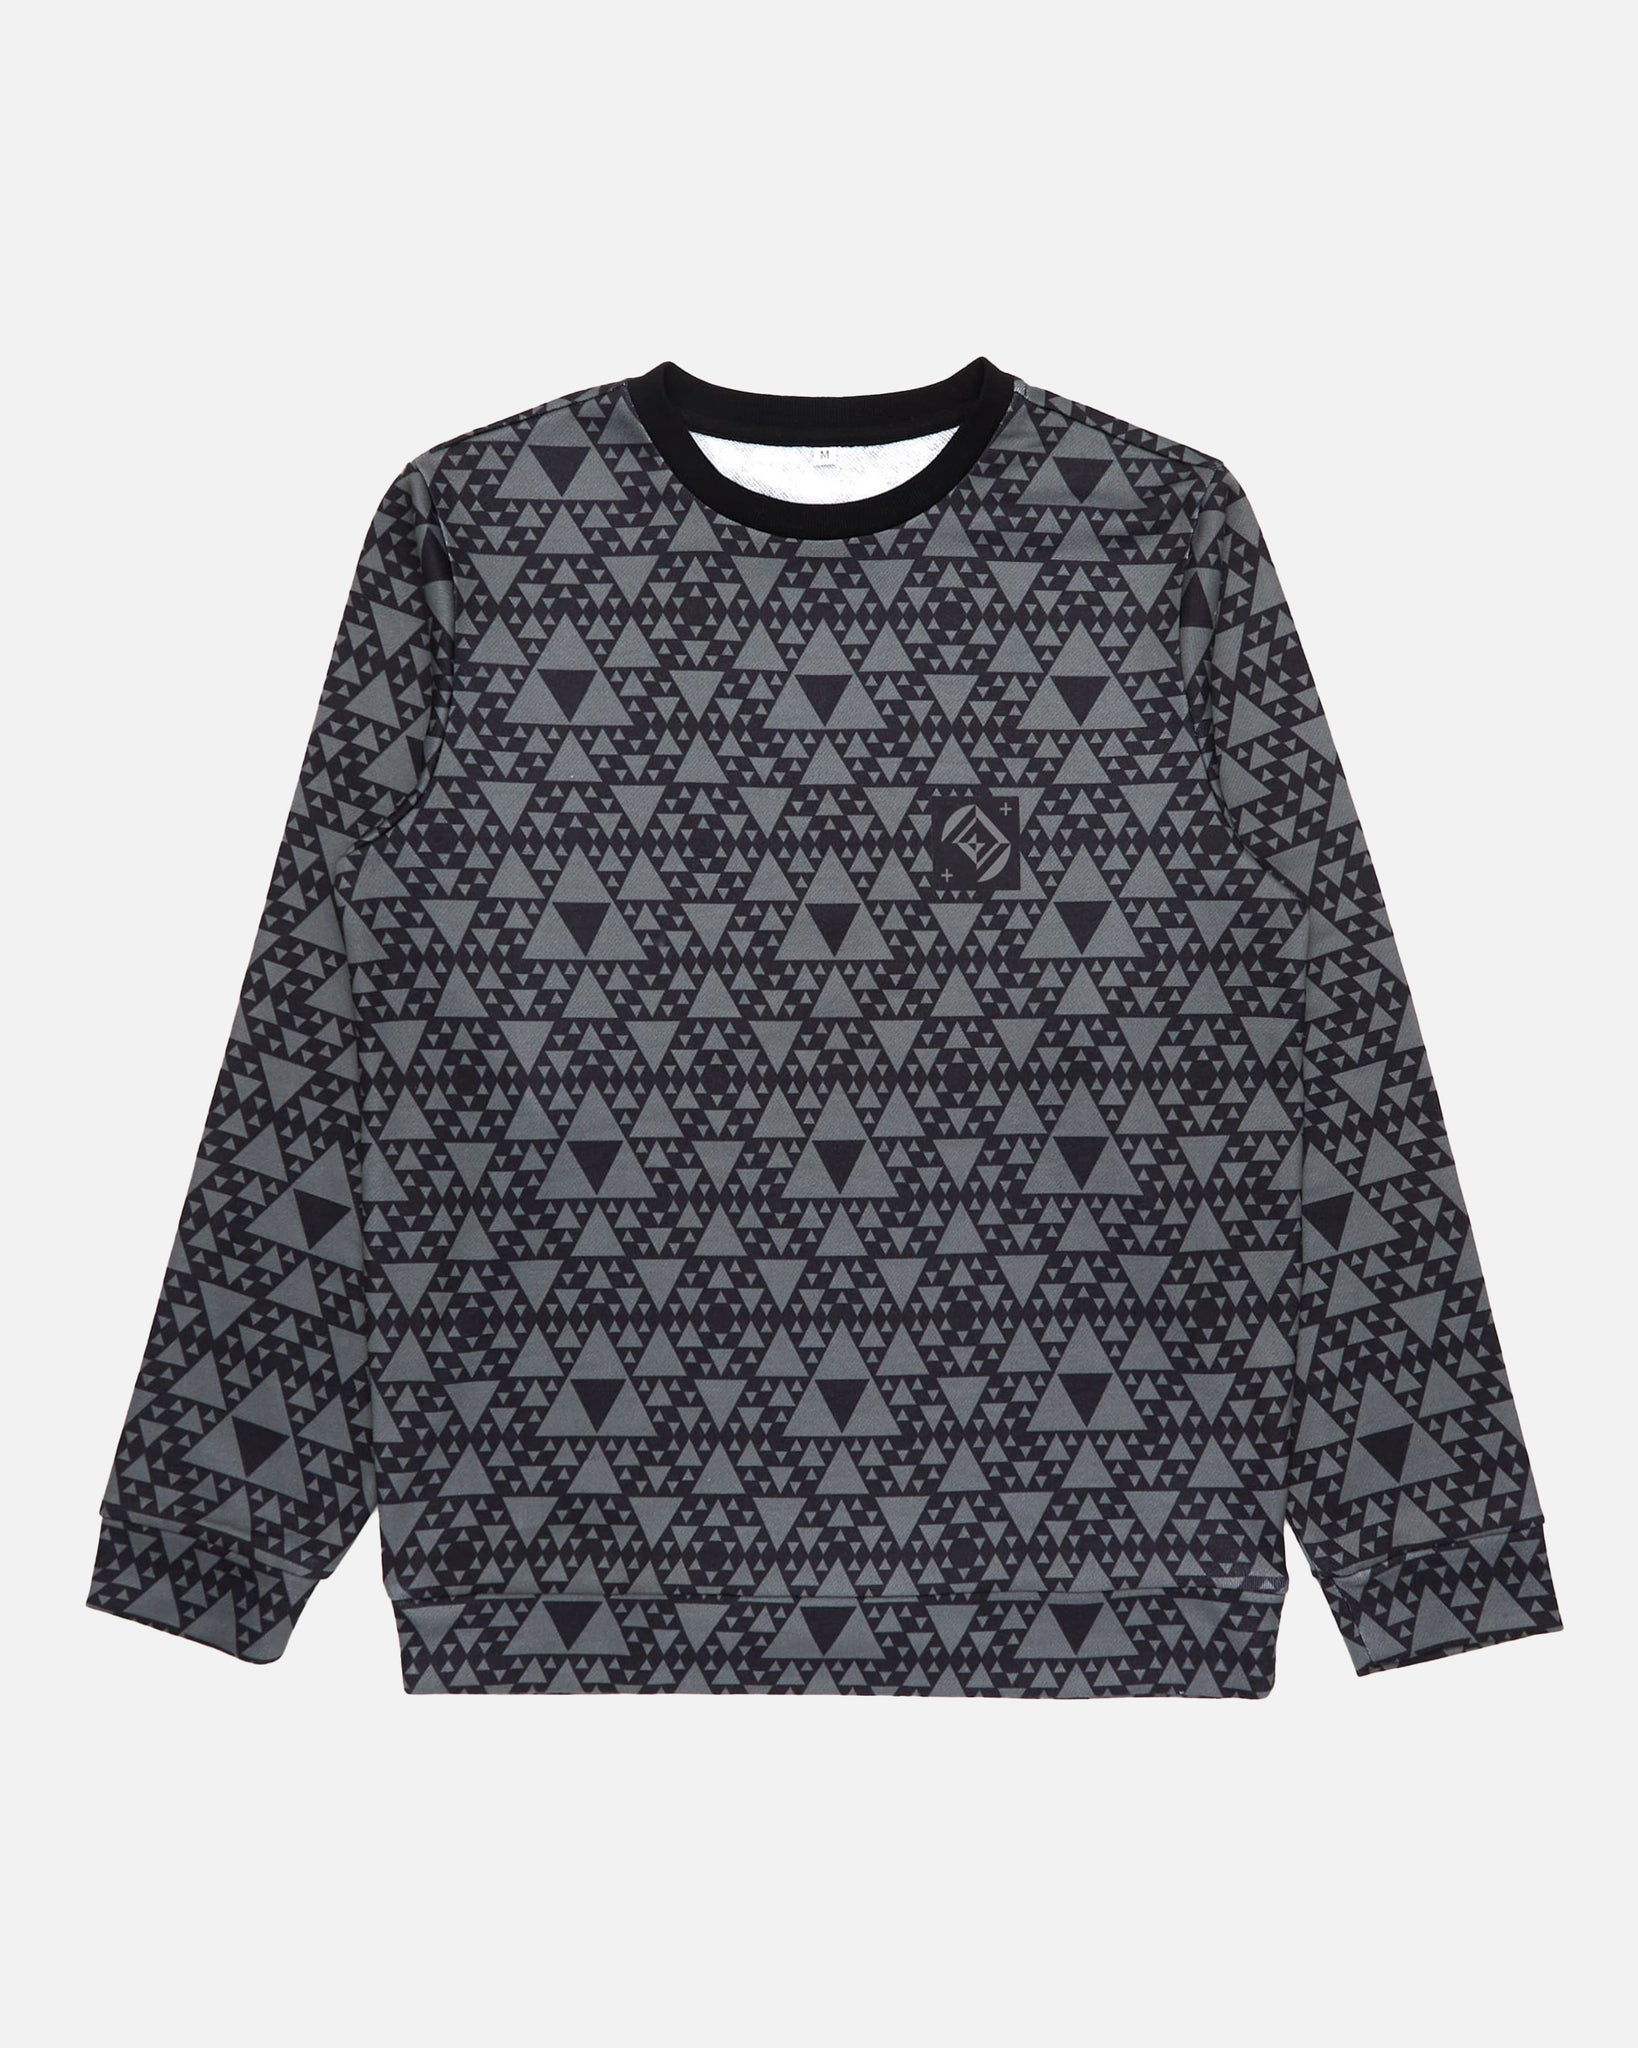 Motion Capture Crewneck